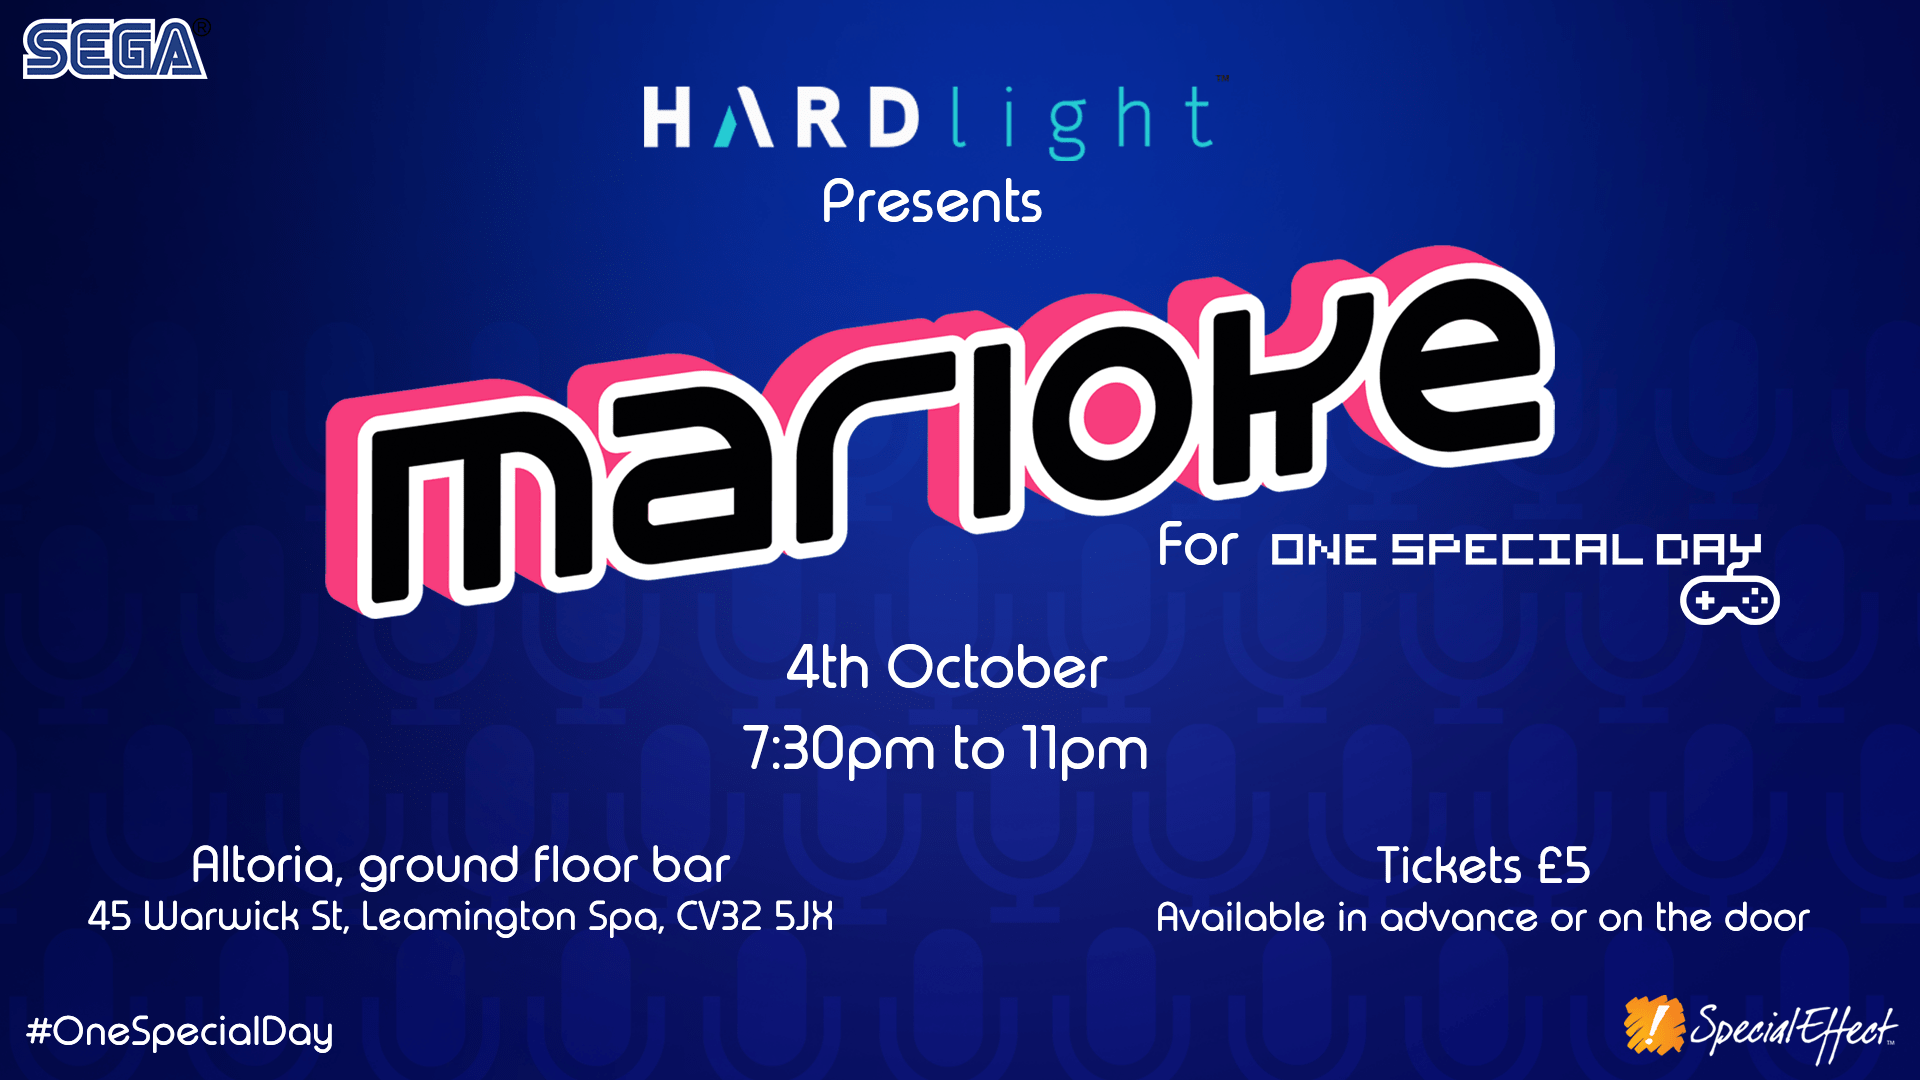 Advert for a videogame-themed karaoke event